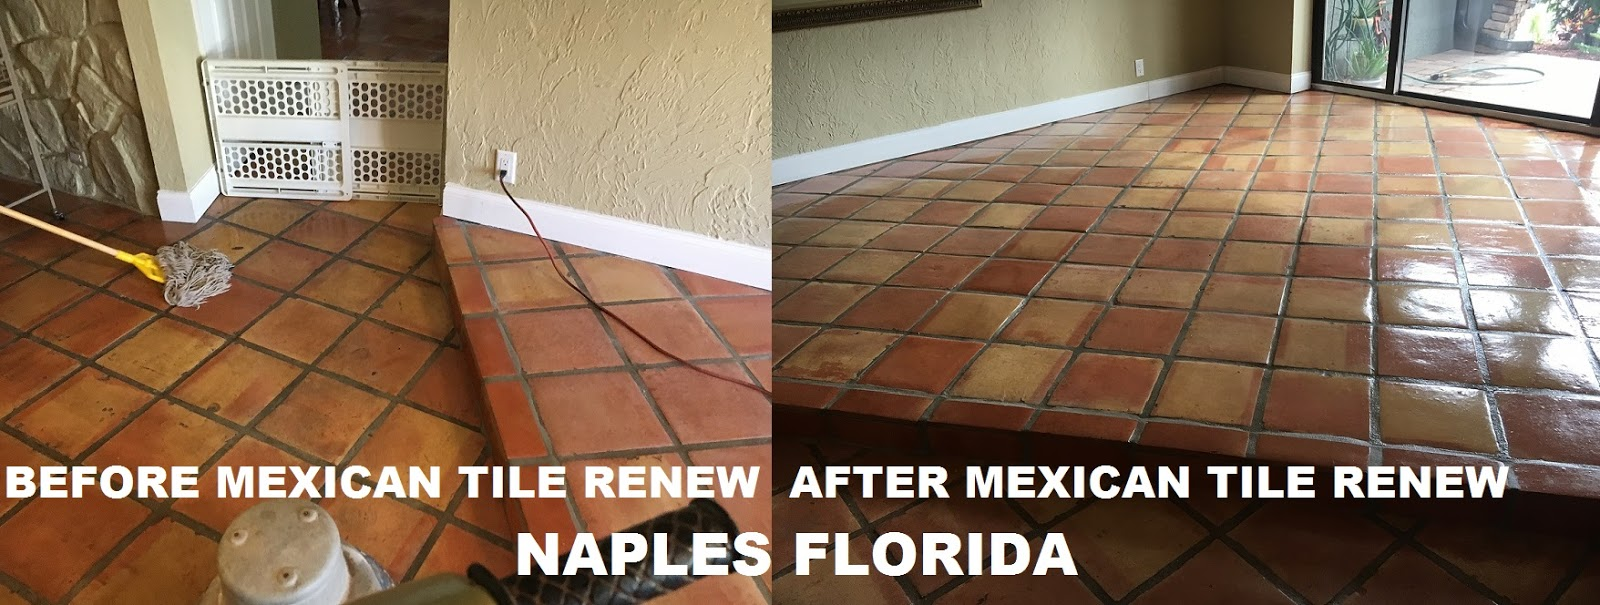 Warner bros tile sarasota fl re do mexican tile 941 926 7444 mexican tile renew project in naples fl where tile had not been redone in over 20 years mexican tile renew projects from sarasota to longboat key to bird doublecrazyfo Gallery